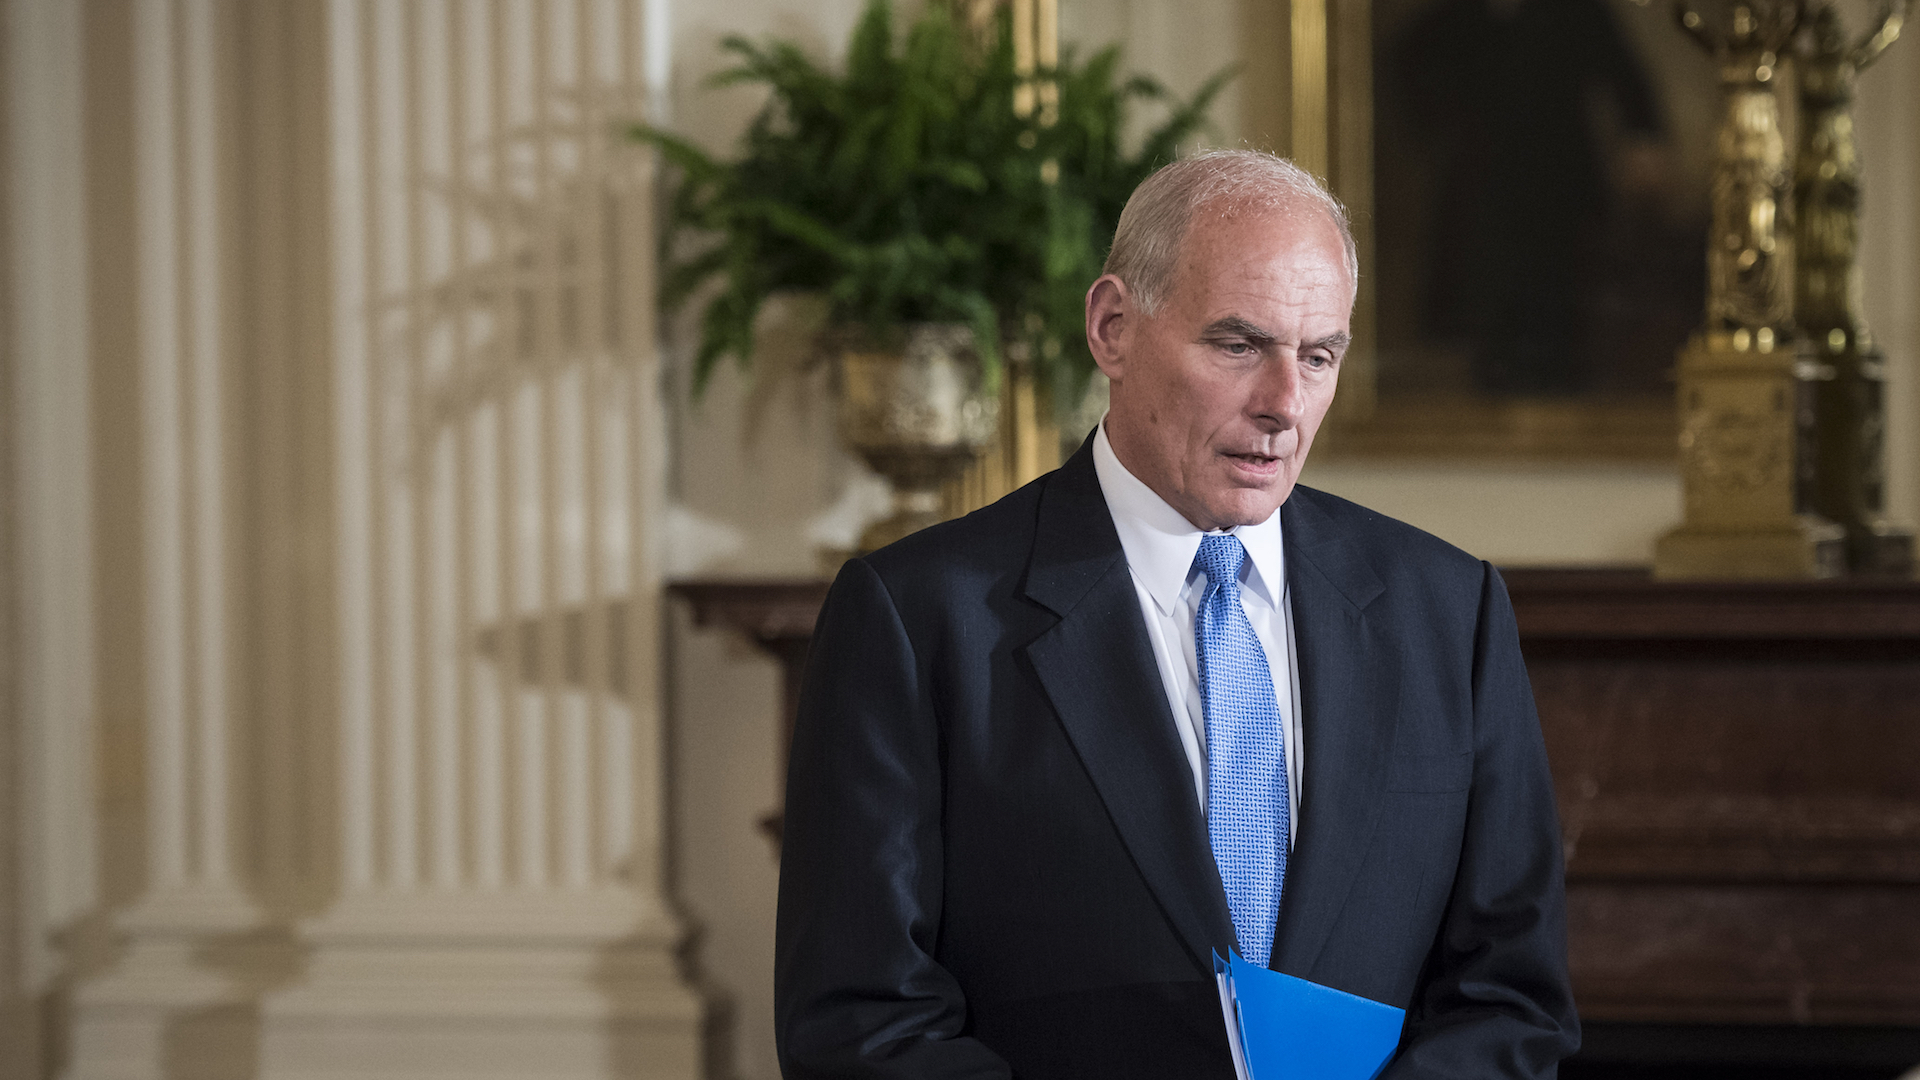 John Kelly, Trump's new chief of staff, 'won't suffer idiots and fools'